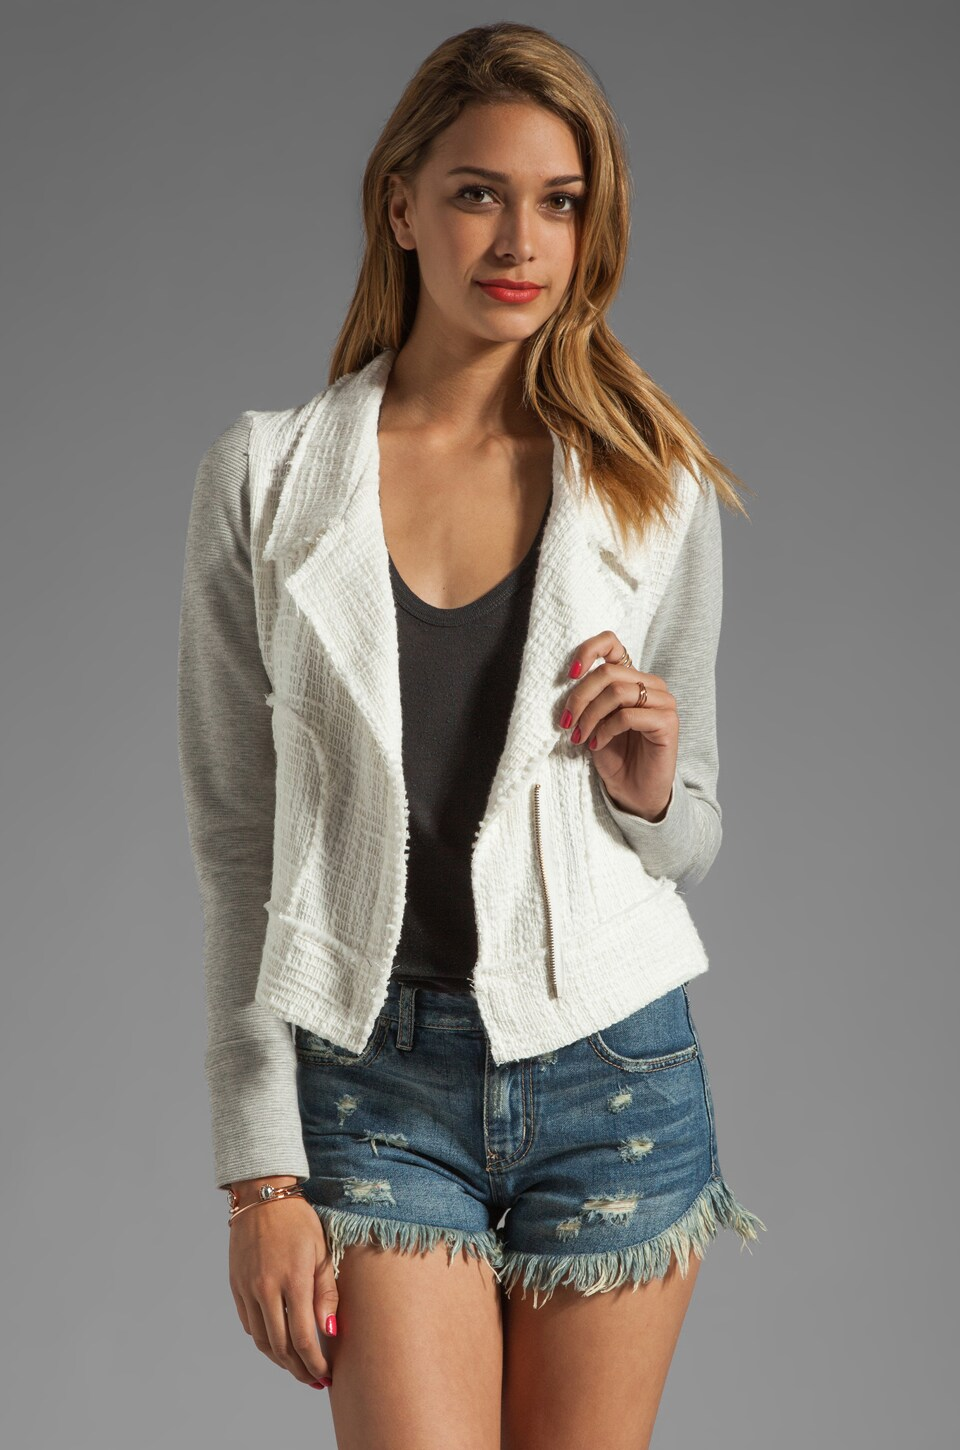 dolan Vintage Tweed Moto Jacket in Ivory